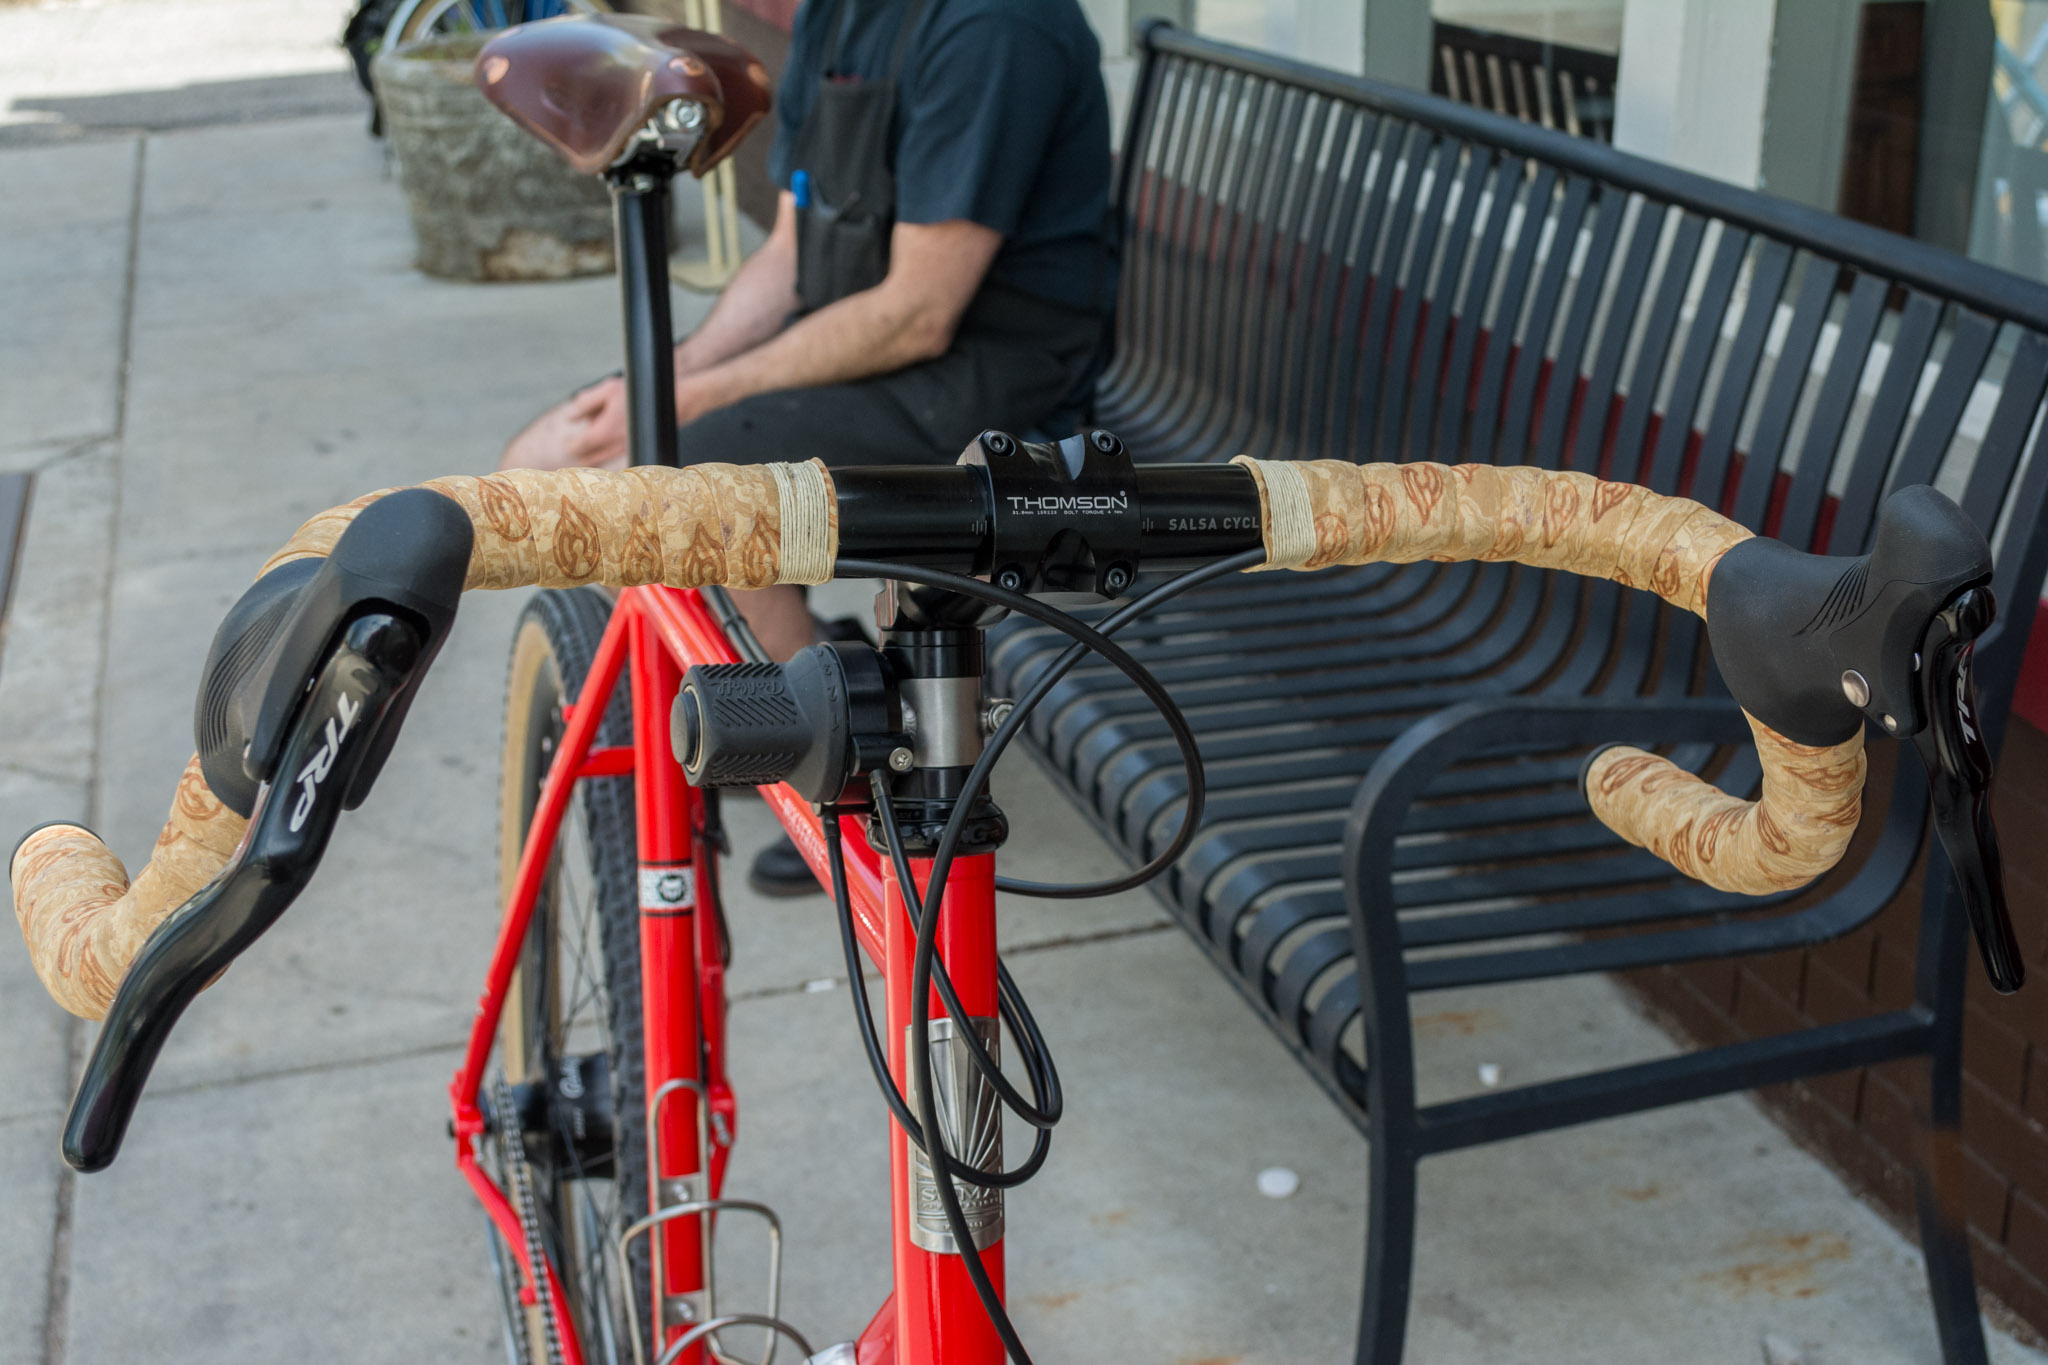 Rohloff shifter mounted on stem for easy access, Cinelli gel cork tape offers comfort on all trails